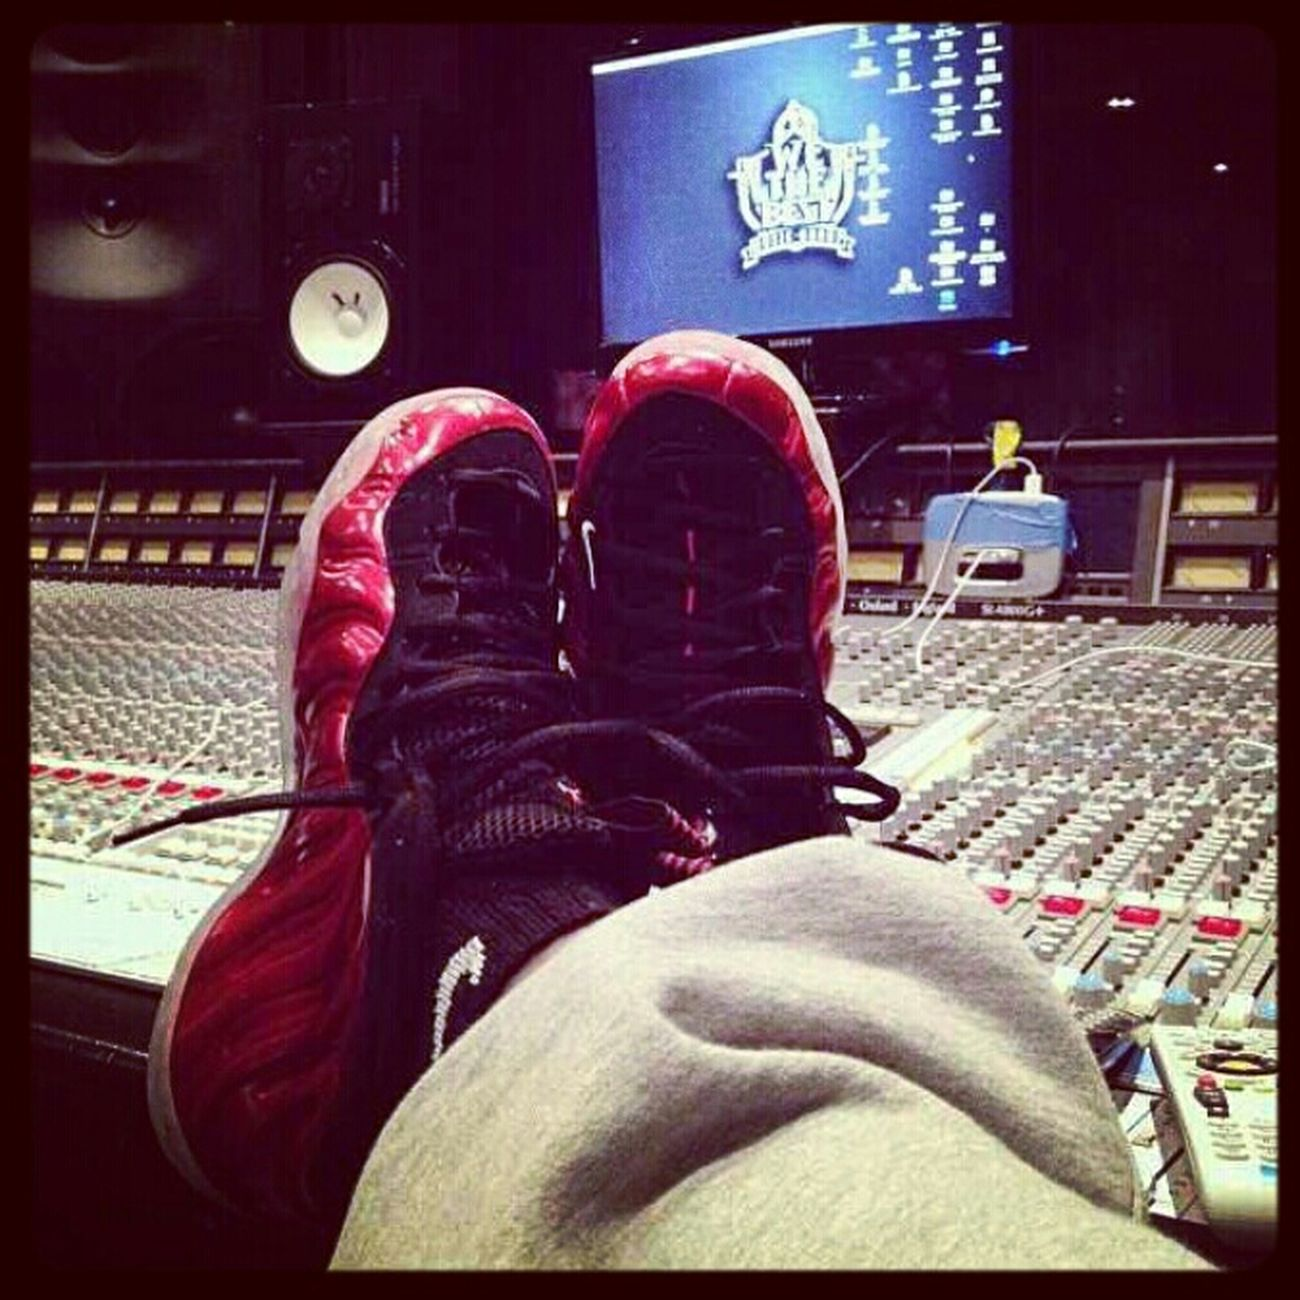 Had To Get Comfortable So I Through On The Joggy's Out The Whip #StudioTimes